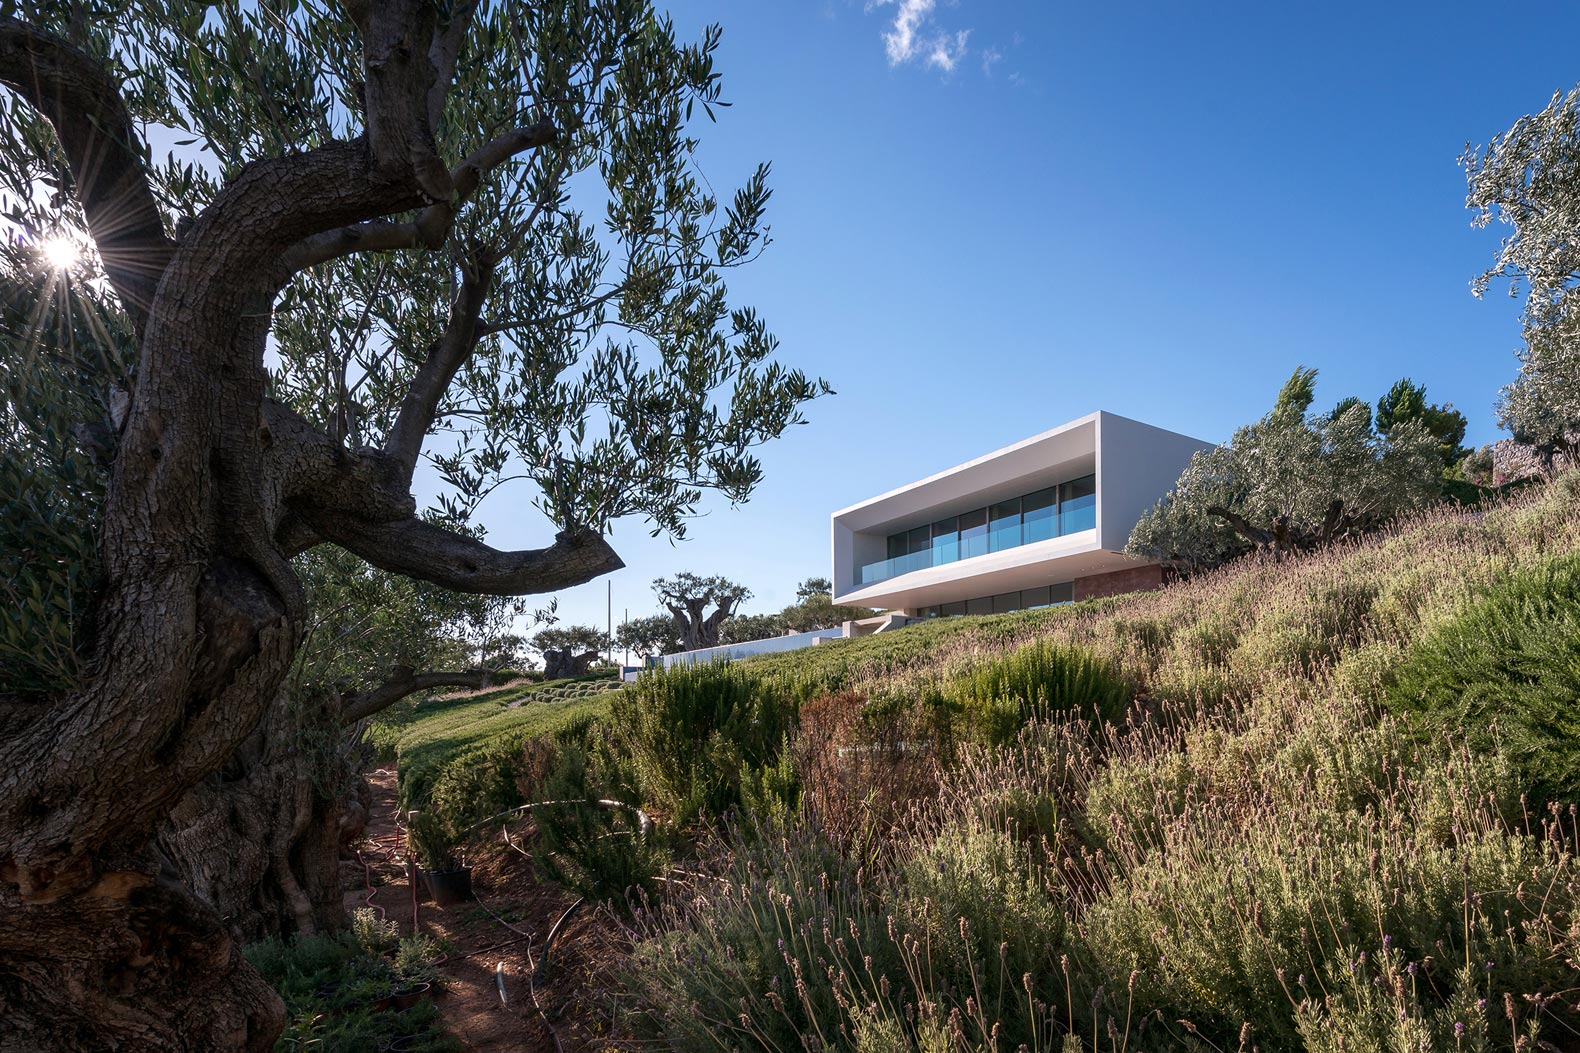 Striking home in Greece uses bioclimatic features to be energy-efficient year-round